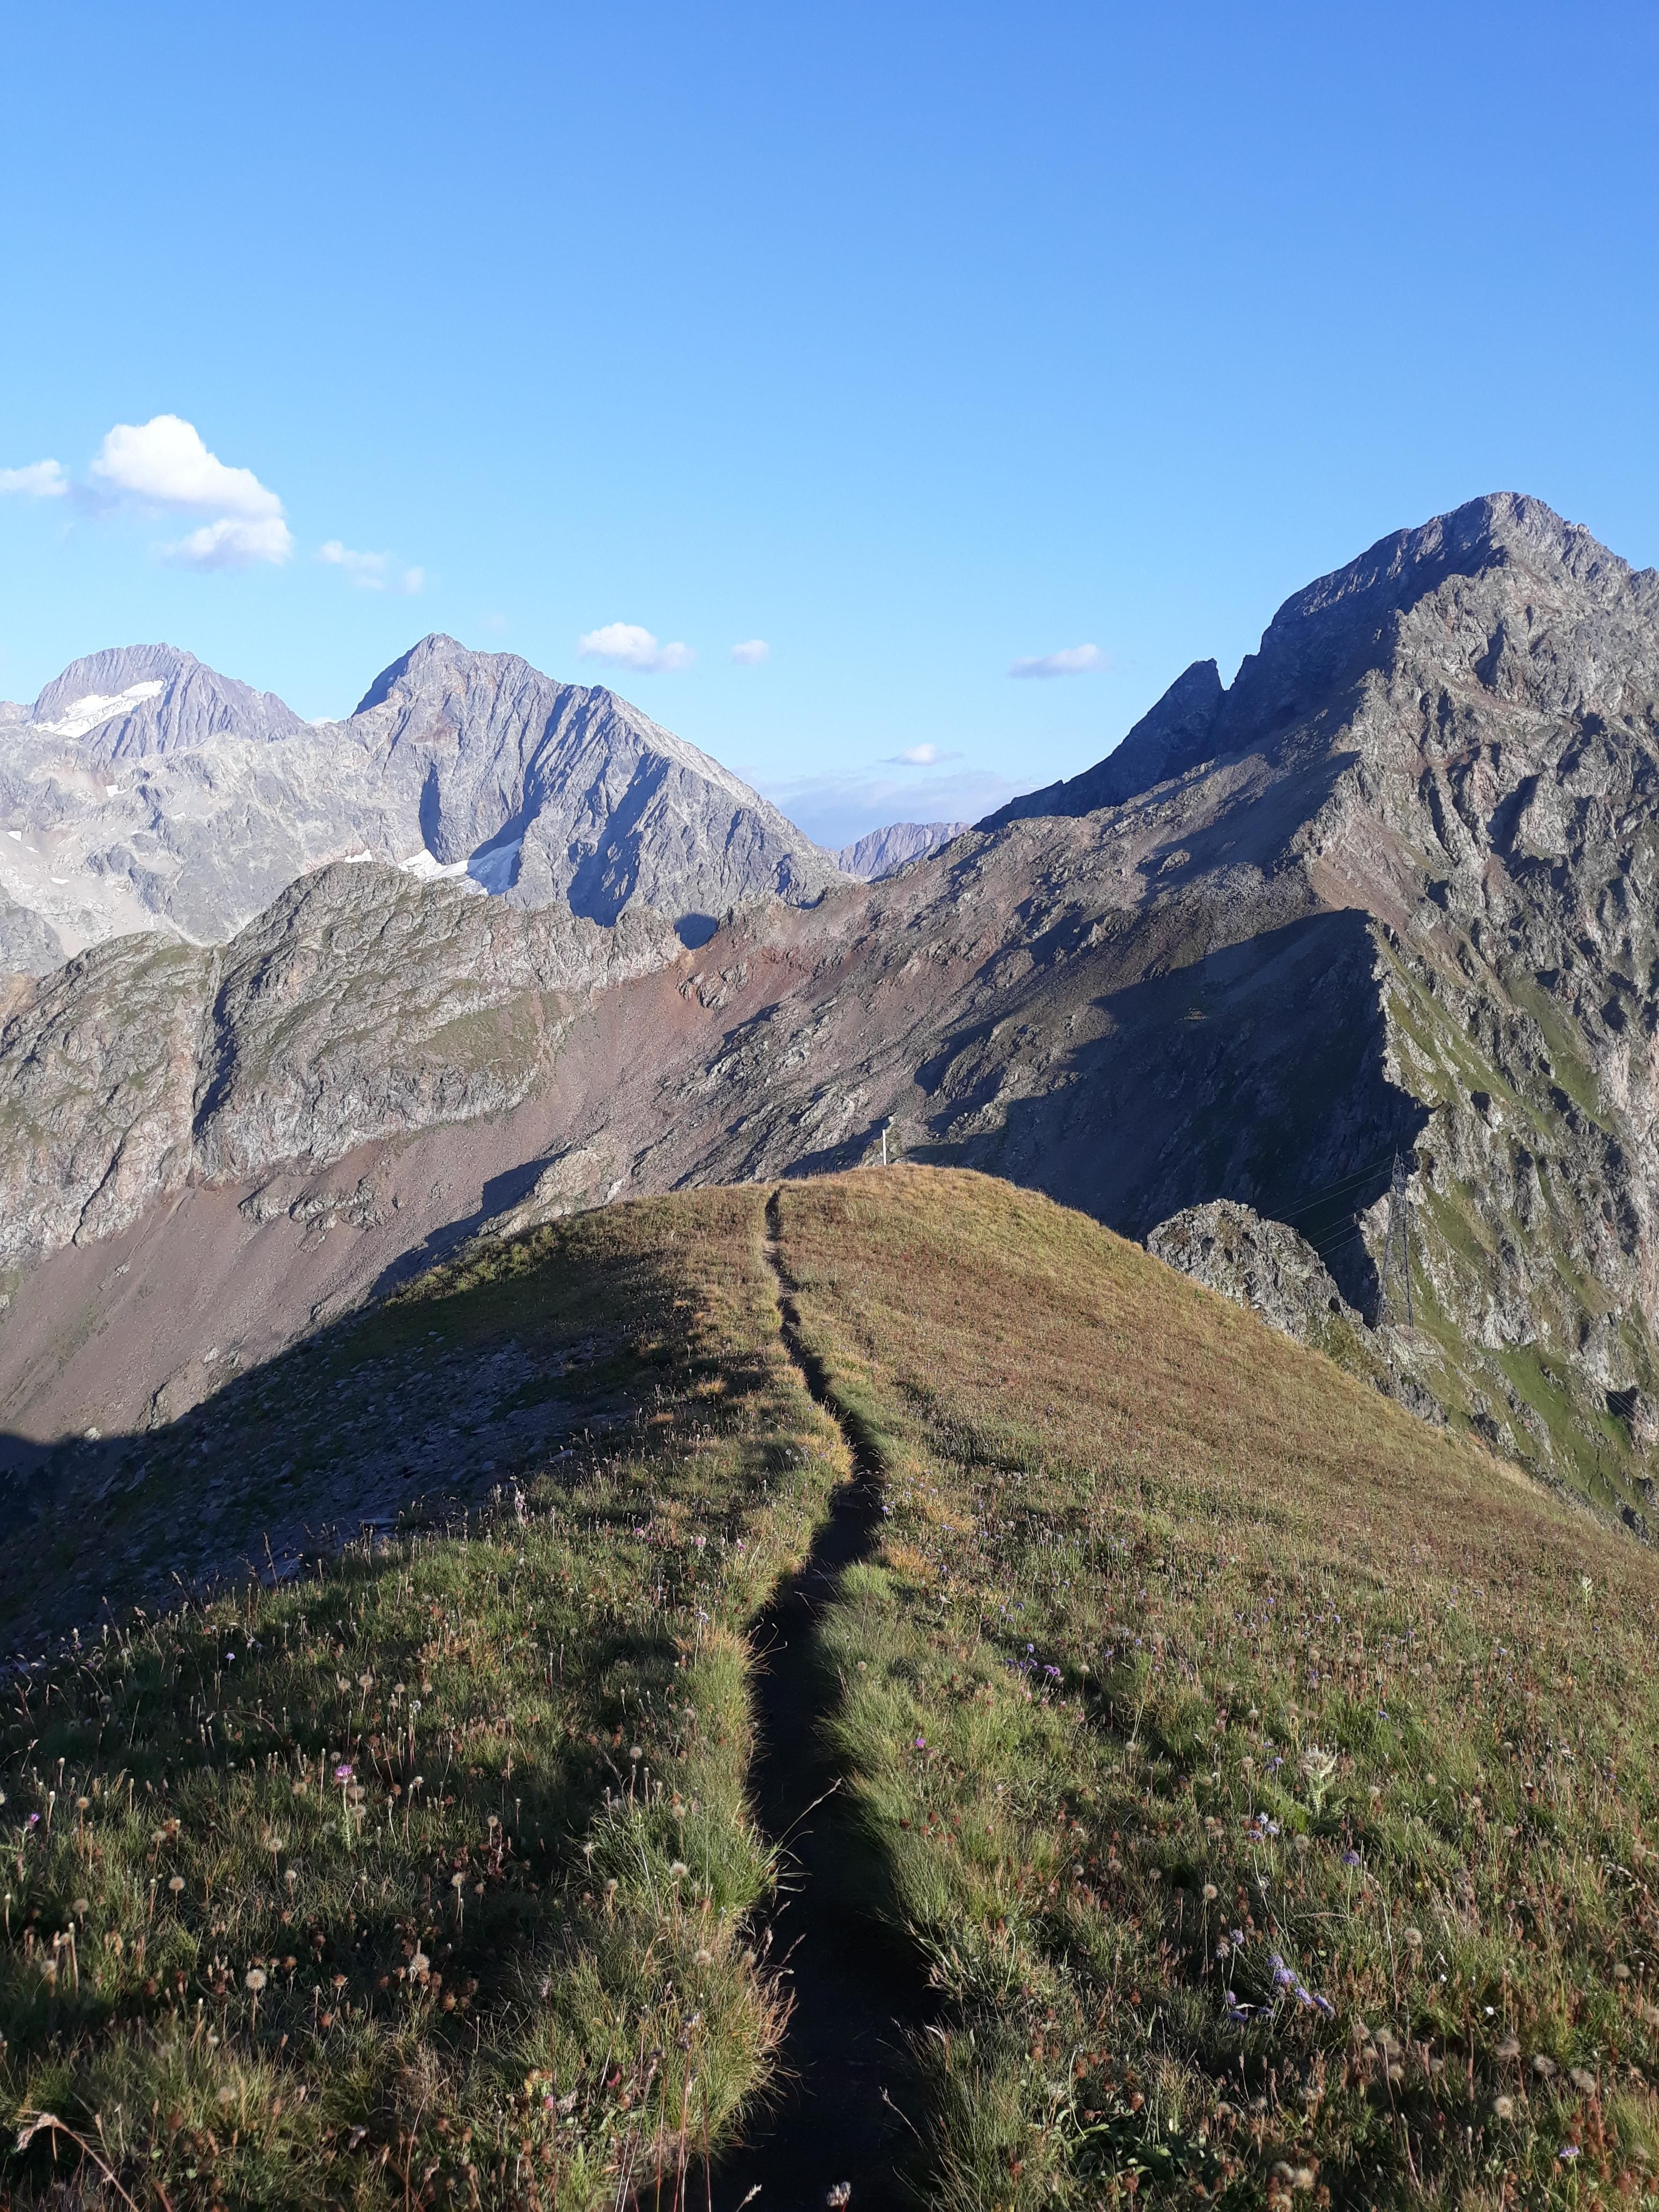 Ridge trail in Parc des Écrins France Camping and hiking